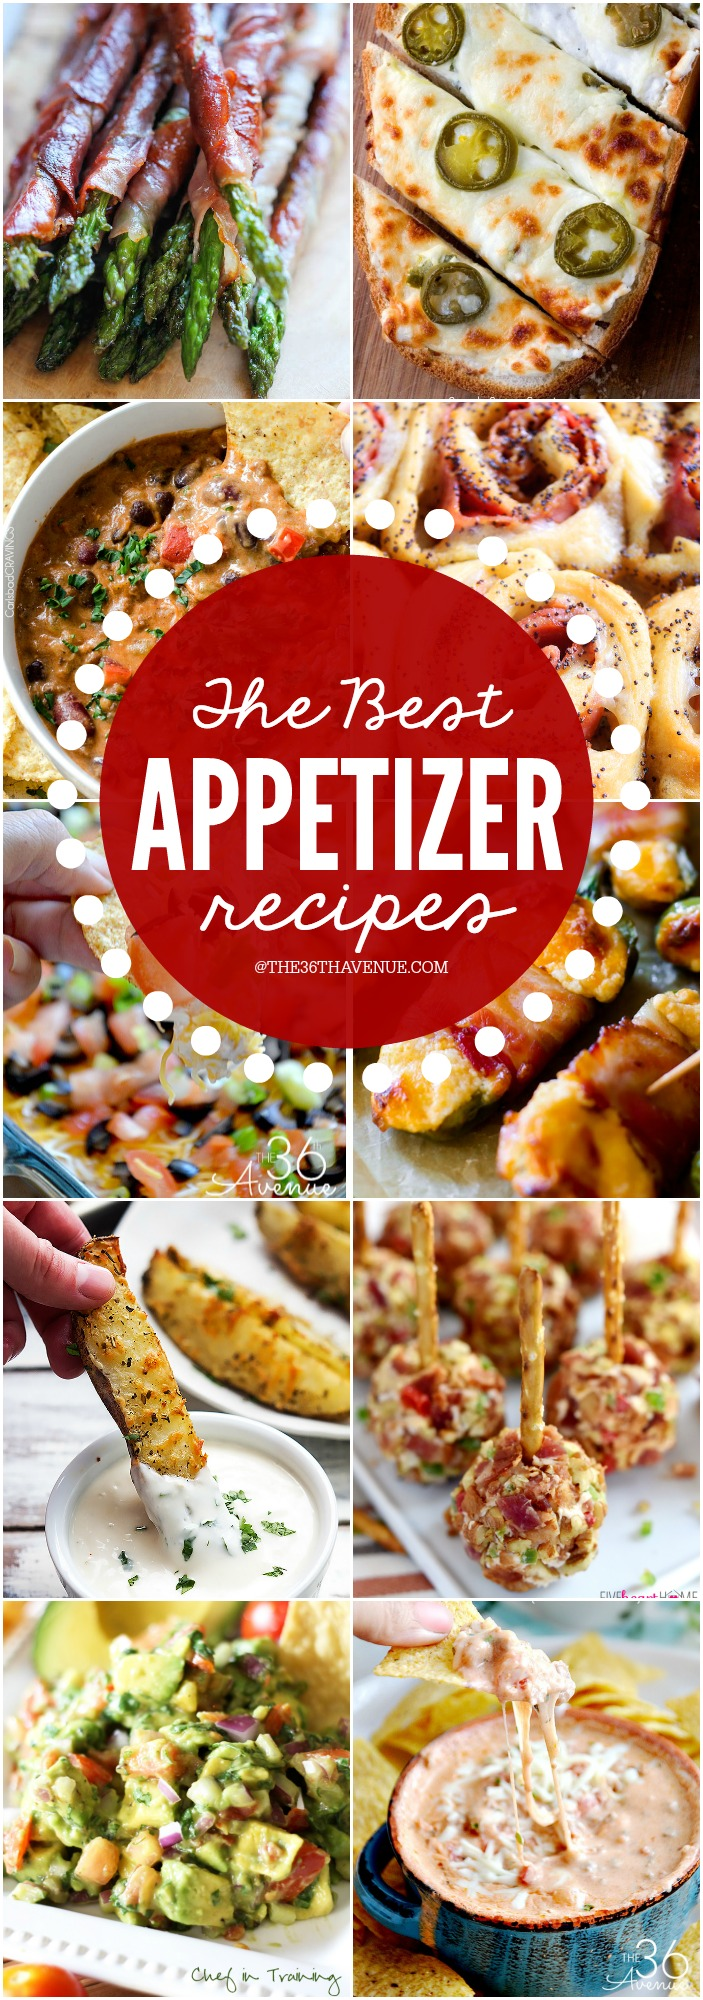 The Best Appetizer Recipes EVER! These are so delicious... PIN IT NOW and make them later!